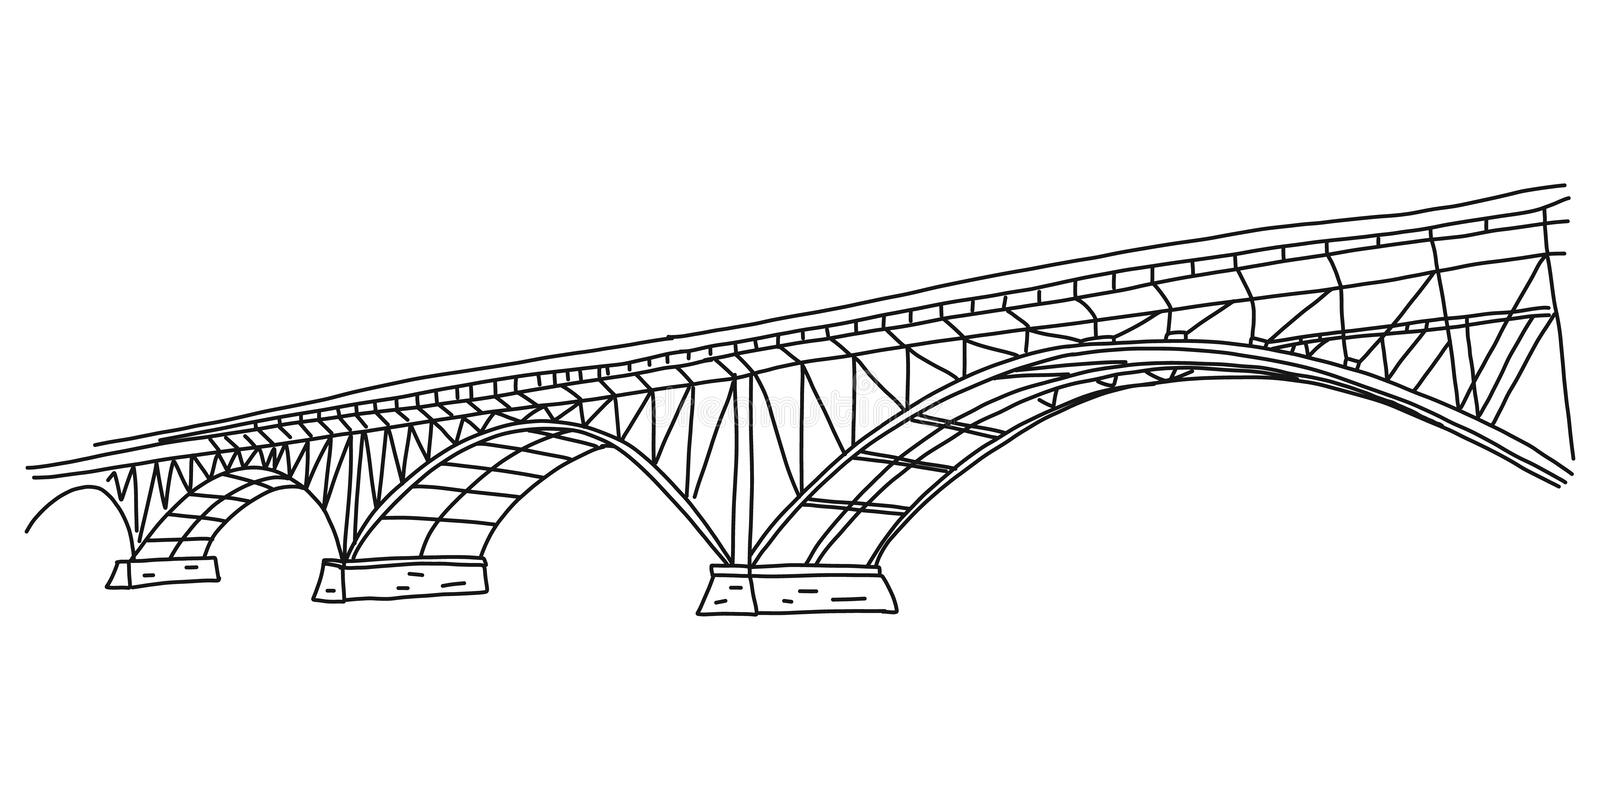 Informational flyer simple quick sketch bridge. Arched bridge for crossing various types vehicles across water surface. Steel and concrete construction royalty free illustration